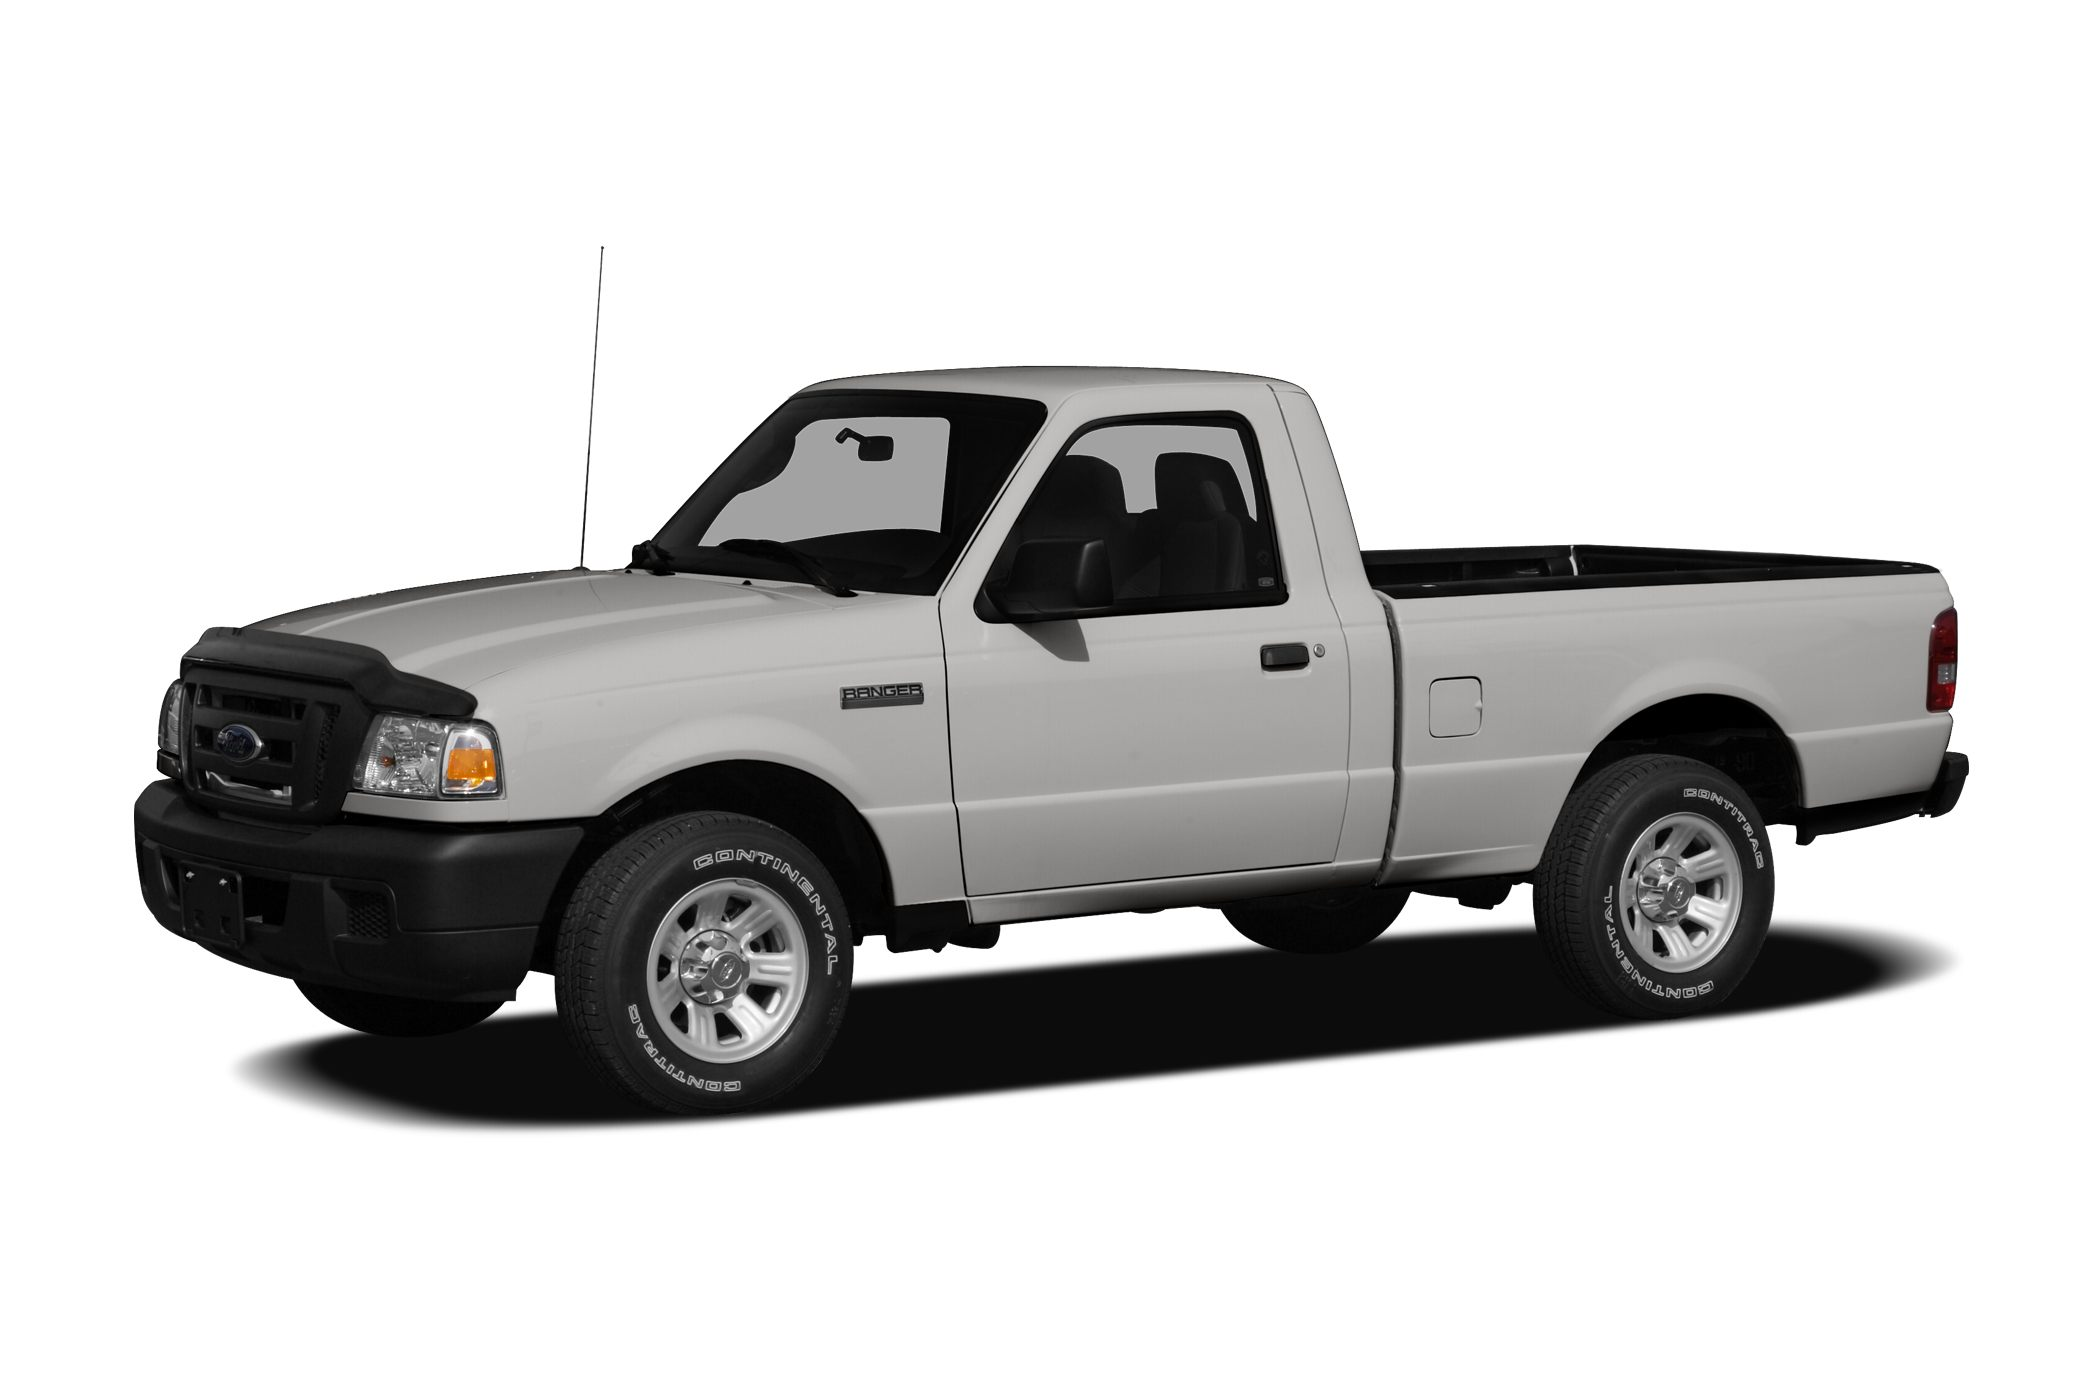 2008 Ford Ranger Owner Reviews And Ratings